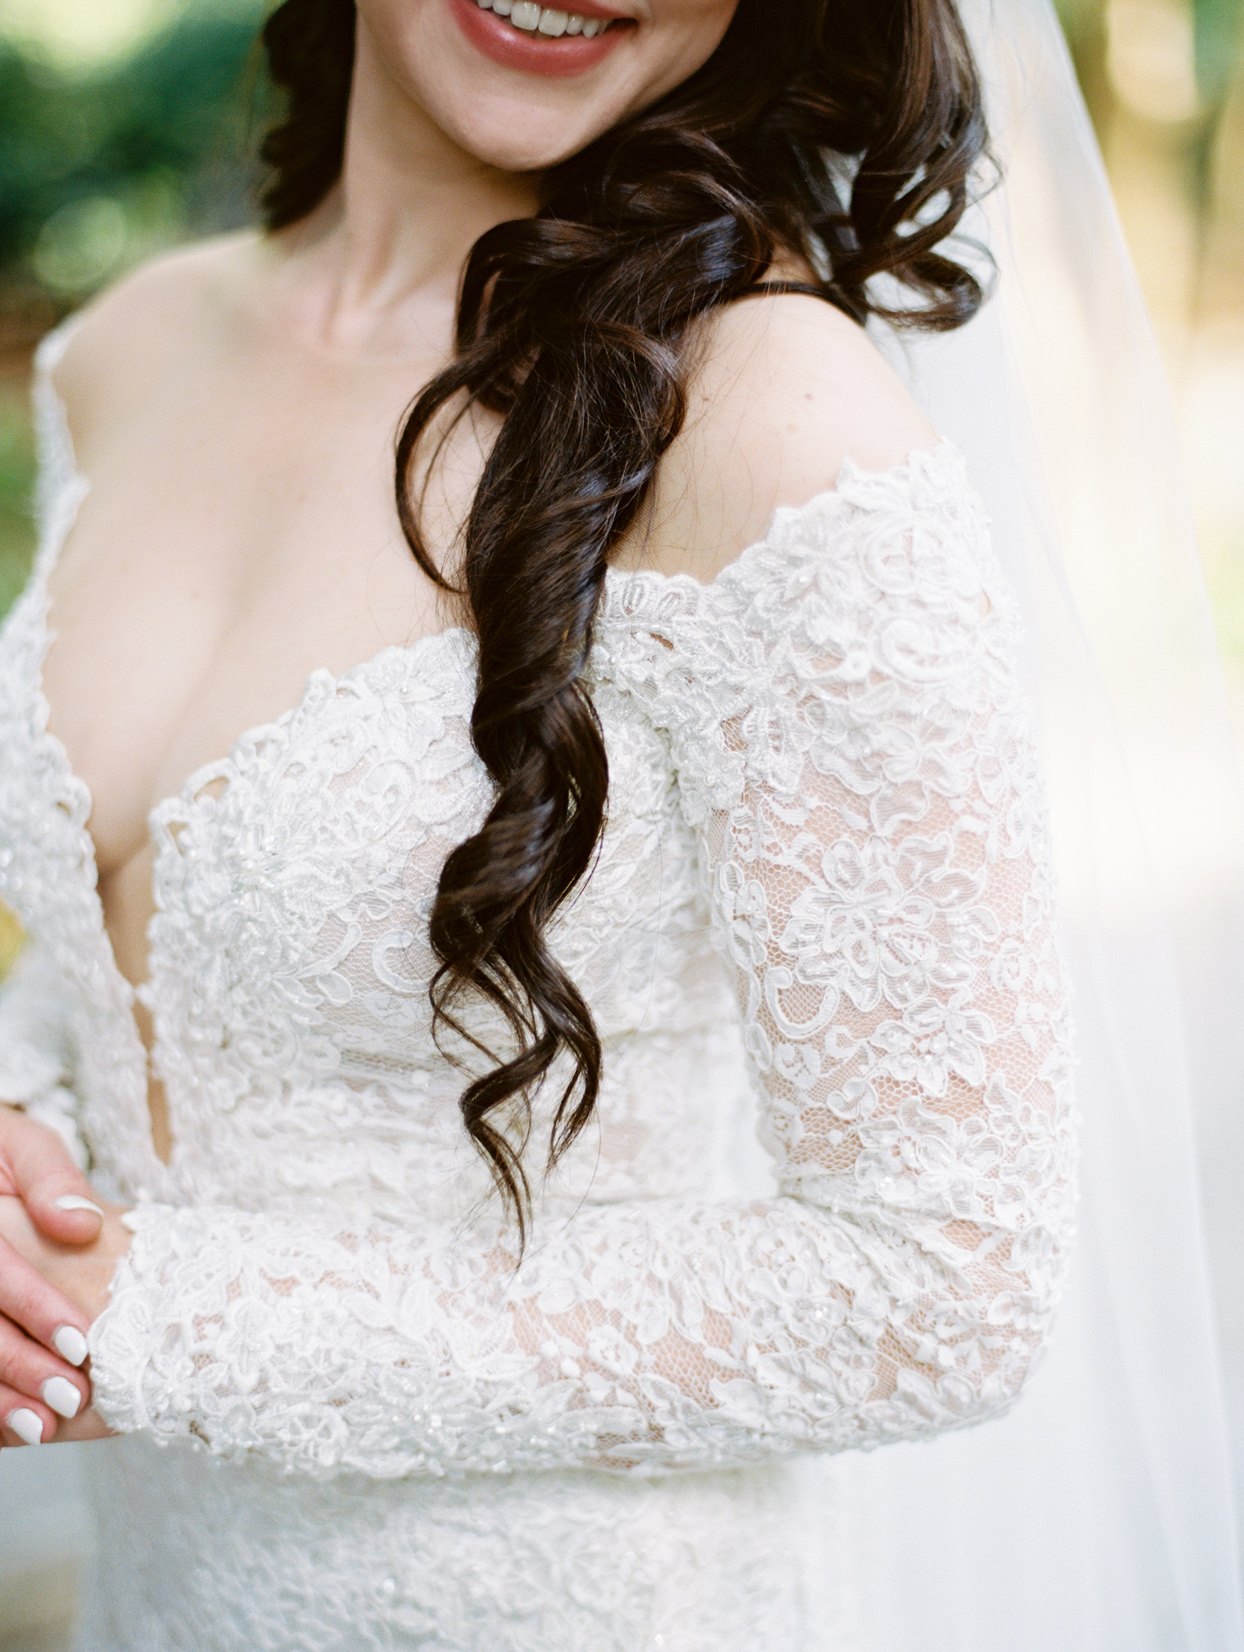 bride wearing gown with illusion neckline and lace sleeves